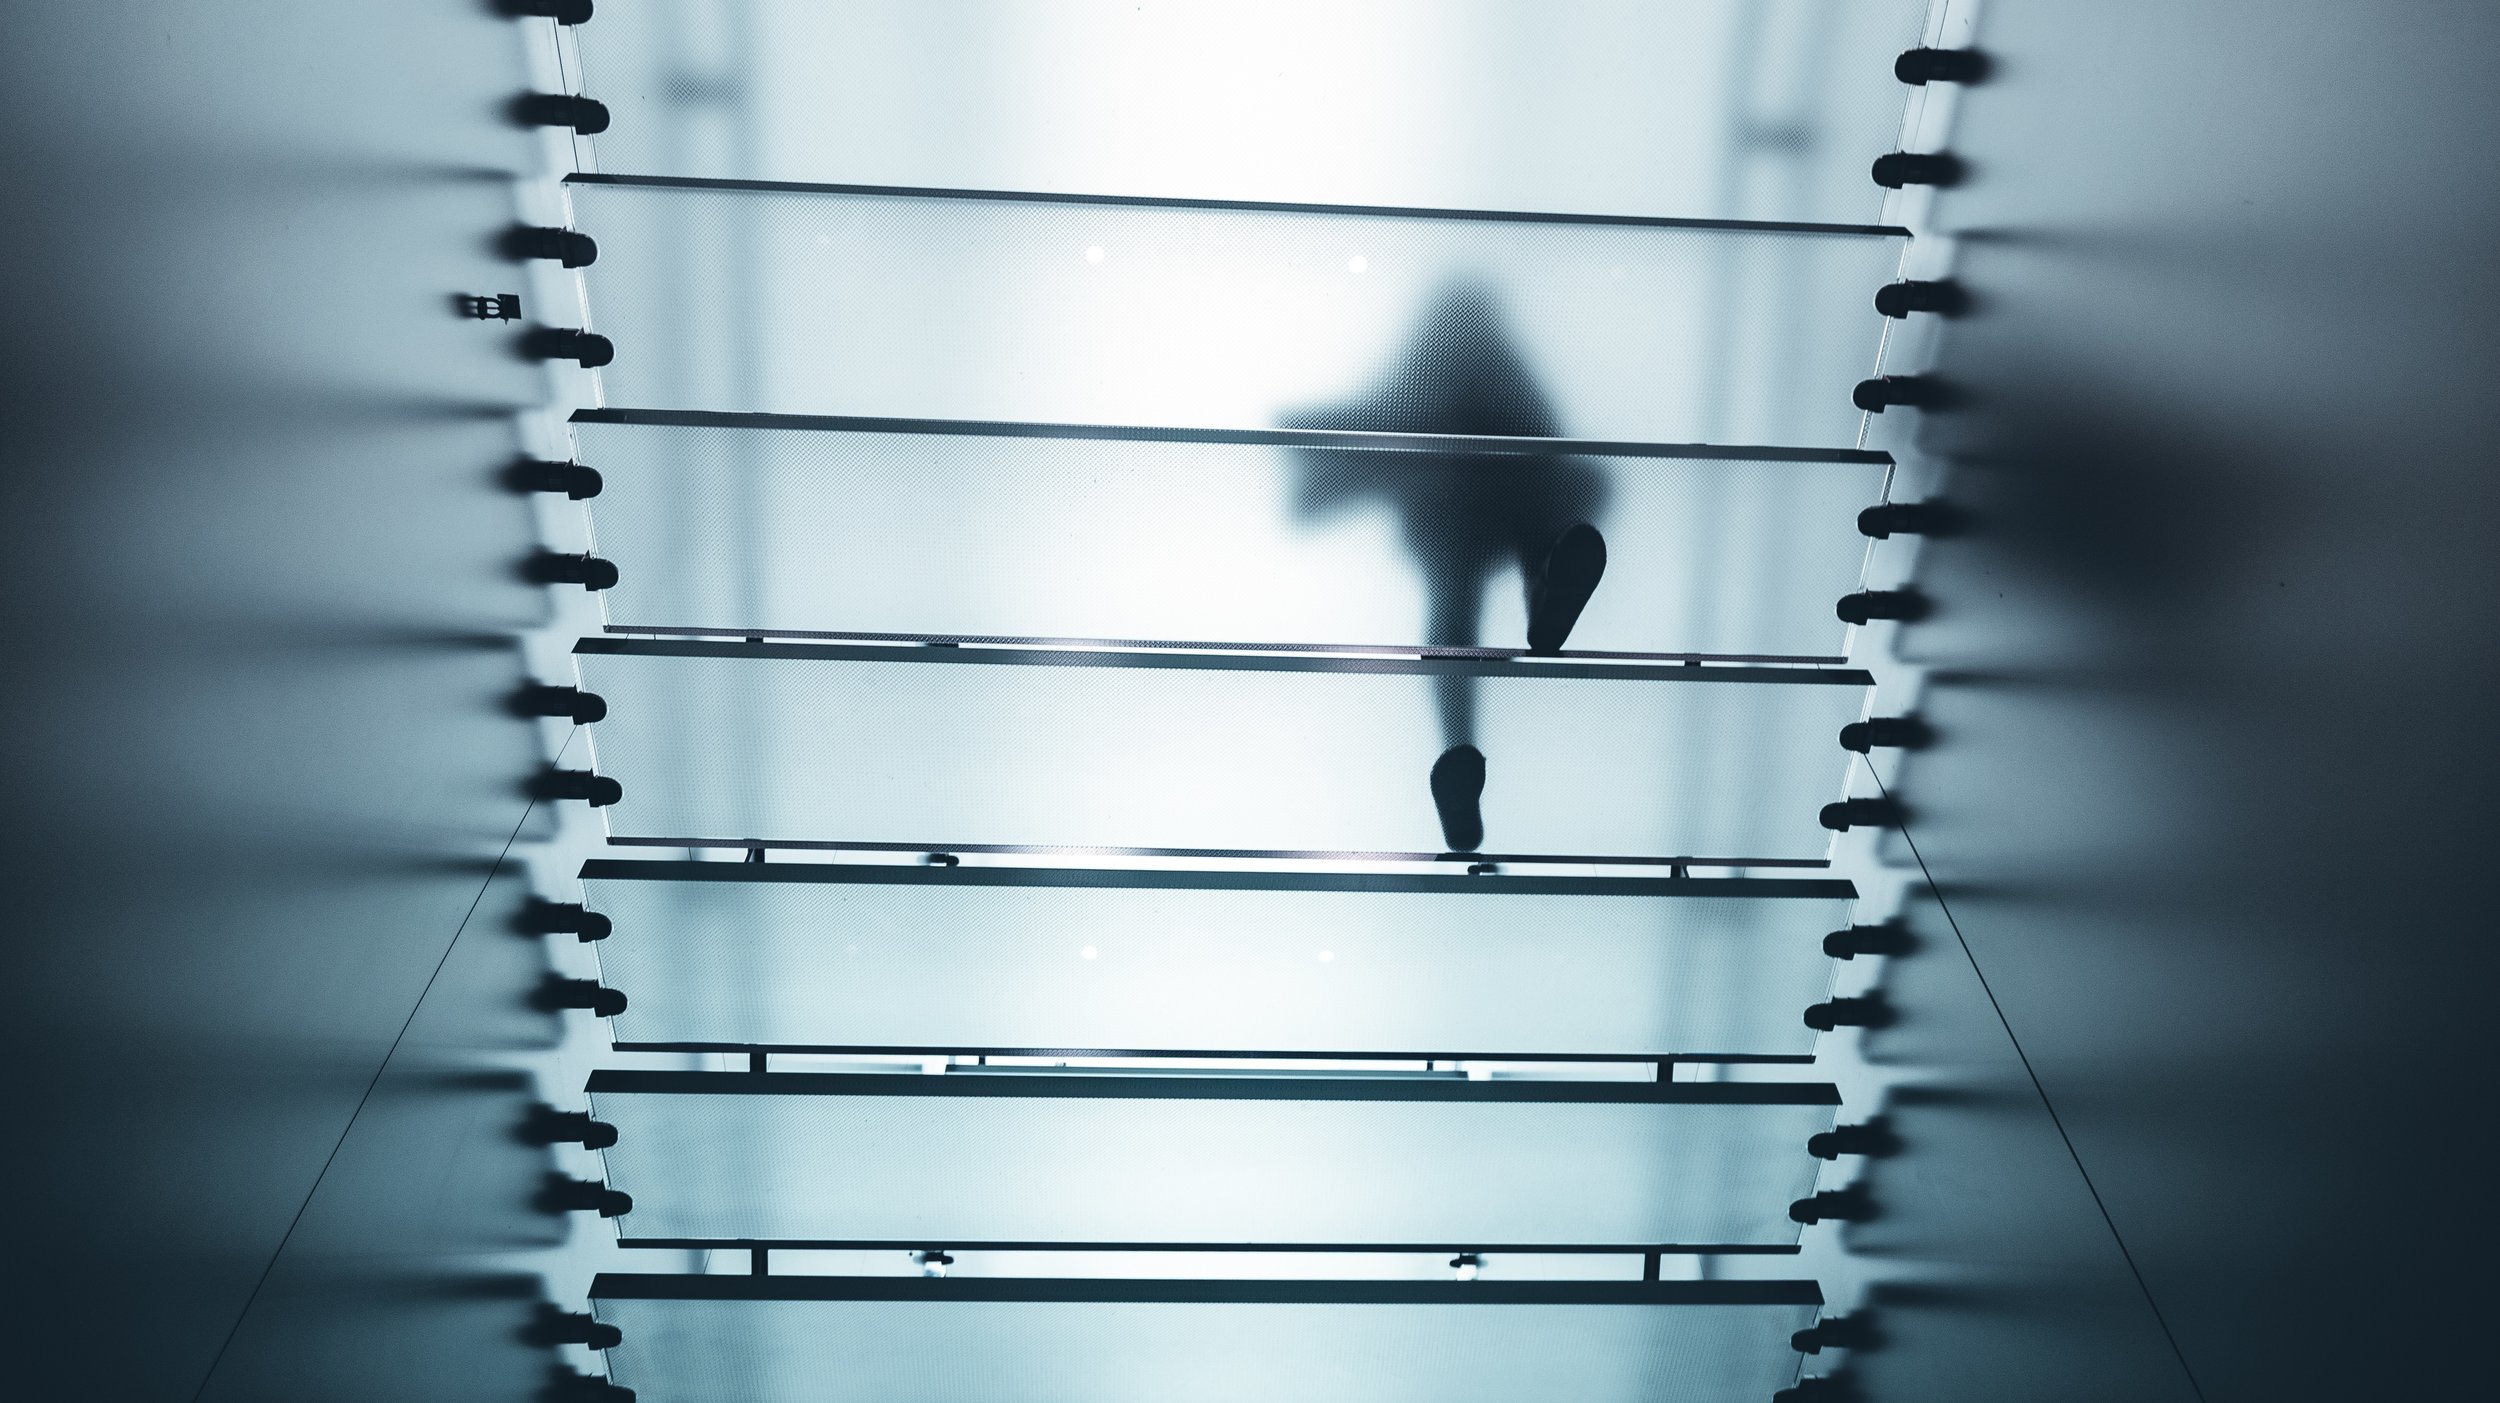 climbing steps stairs unsplash at work take stairs.jpg